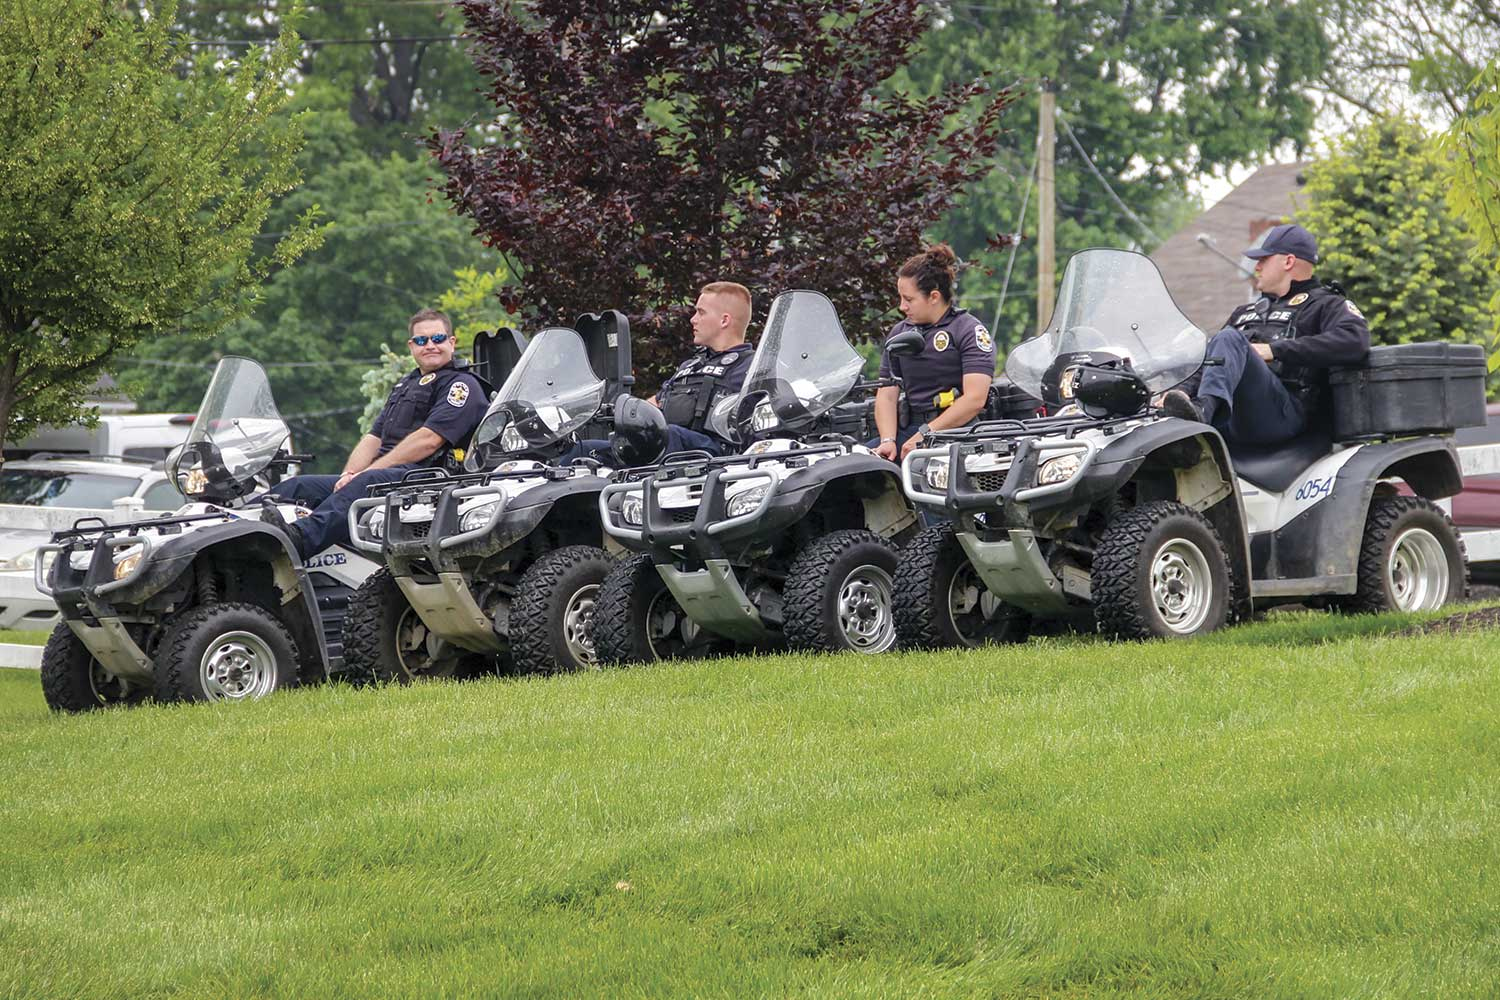 The Louisville Metro Police Department's Special Response Team keeps a mobile presence at the Kentucky Derby as they are able to respond to any situation at a moment's notice. (Photo by Michael A. Moore)